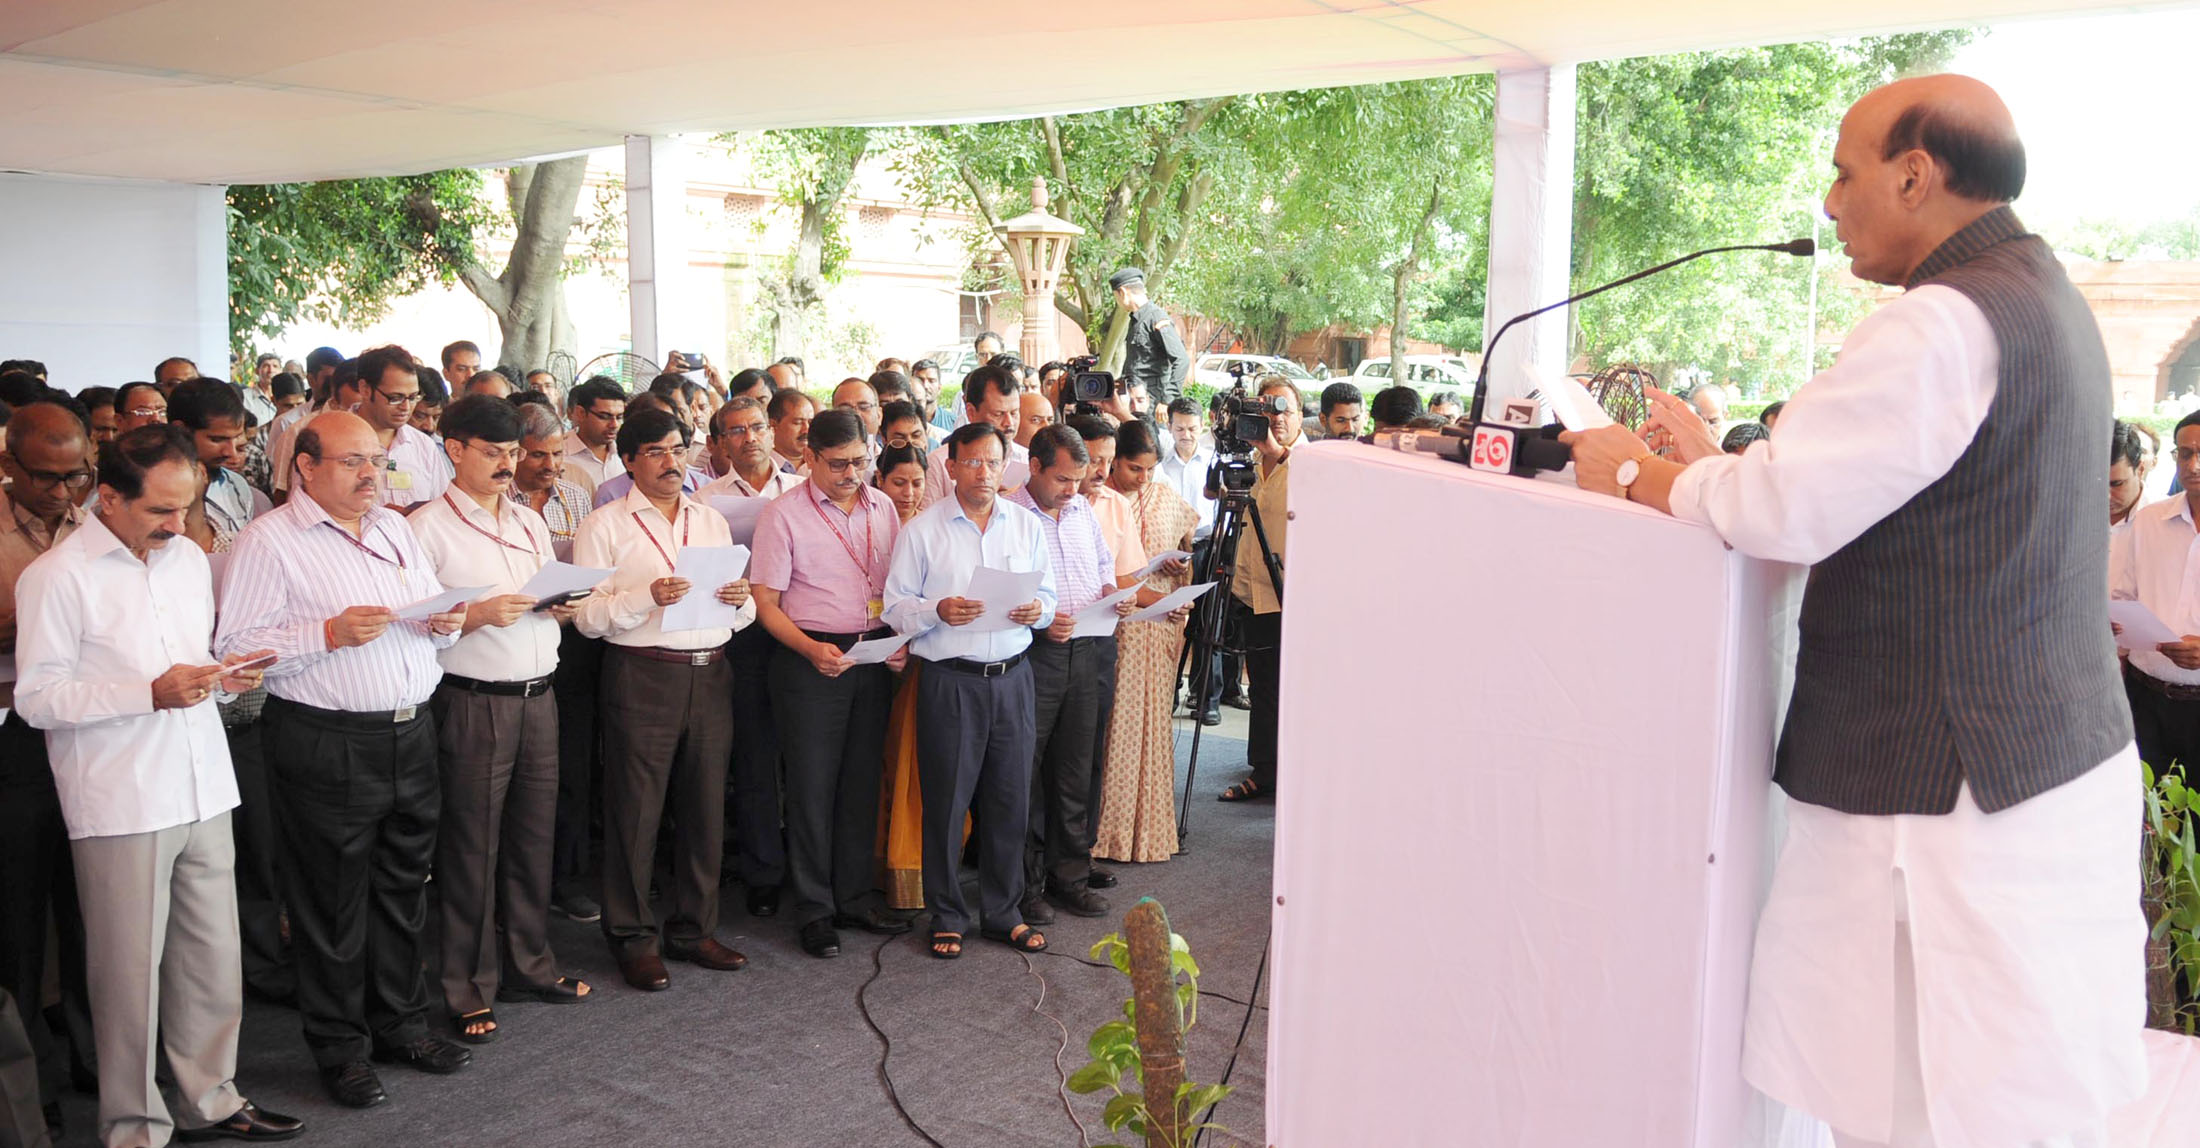 The Union Home Minister, Shri Rajnath Singh administering the Sadbhavna Diwas pledge to the officers and staff of the Ministry, in New Delhi on August 20, 2015.